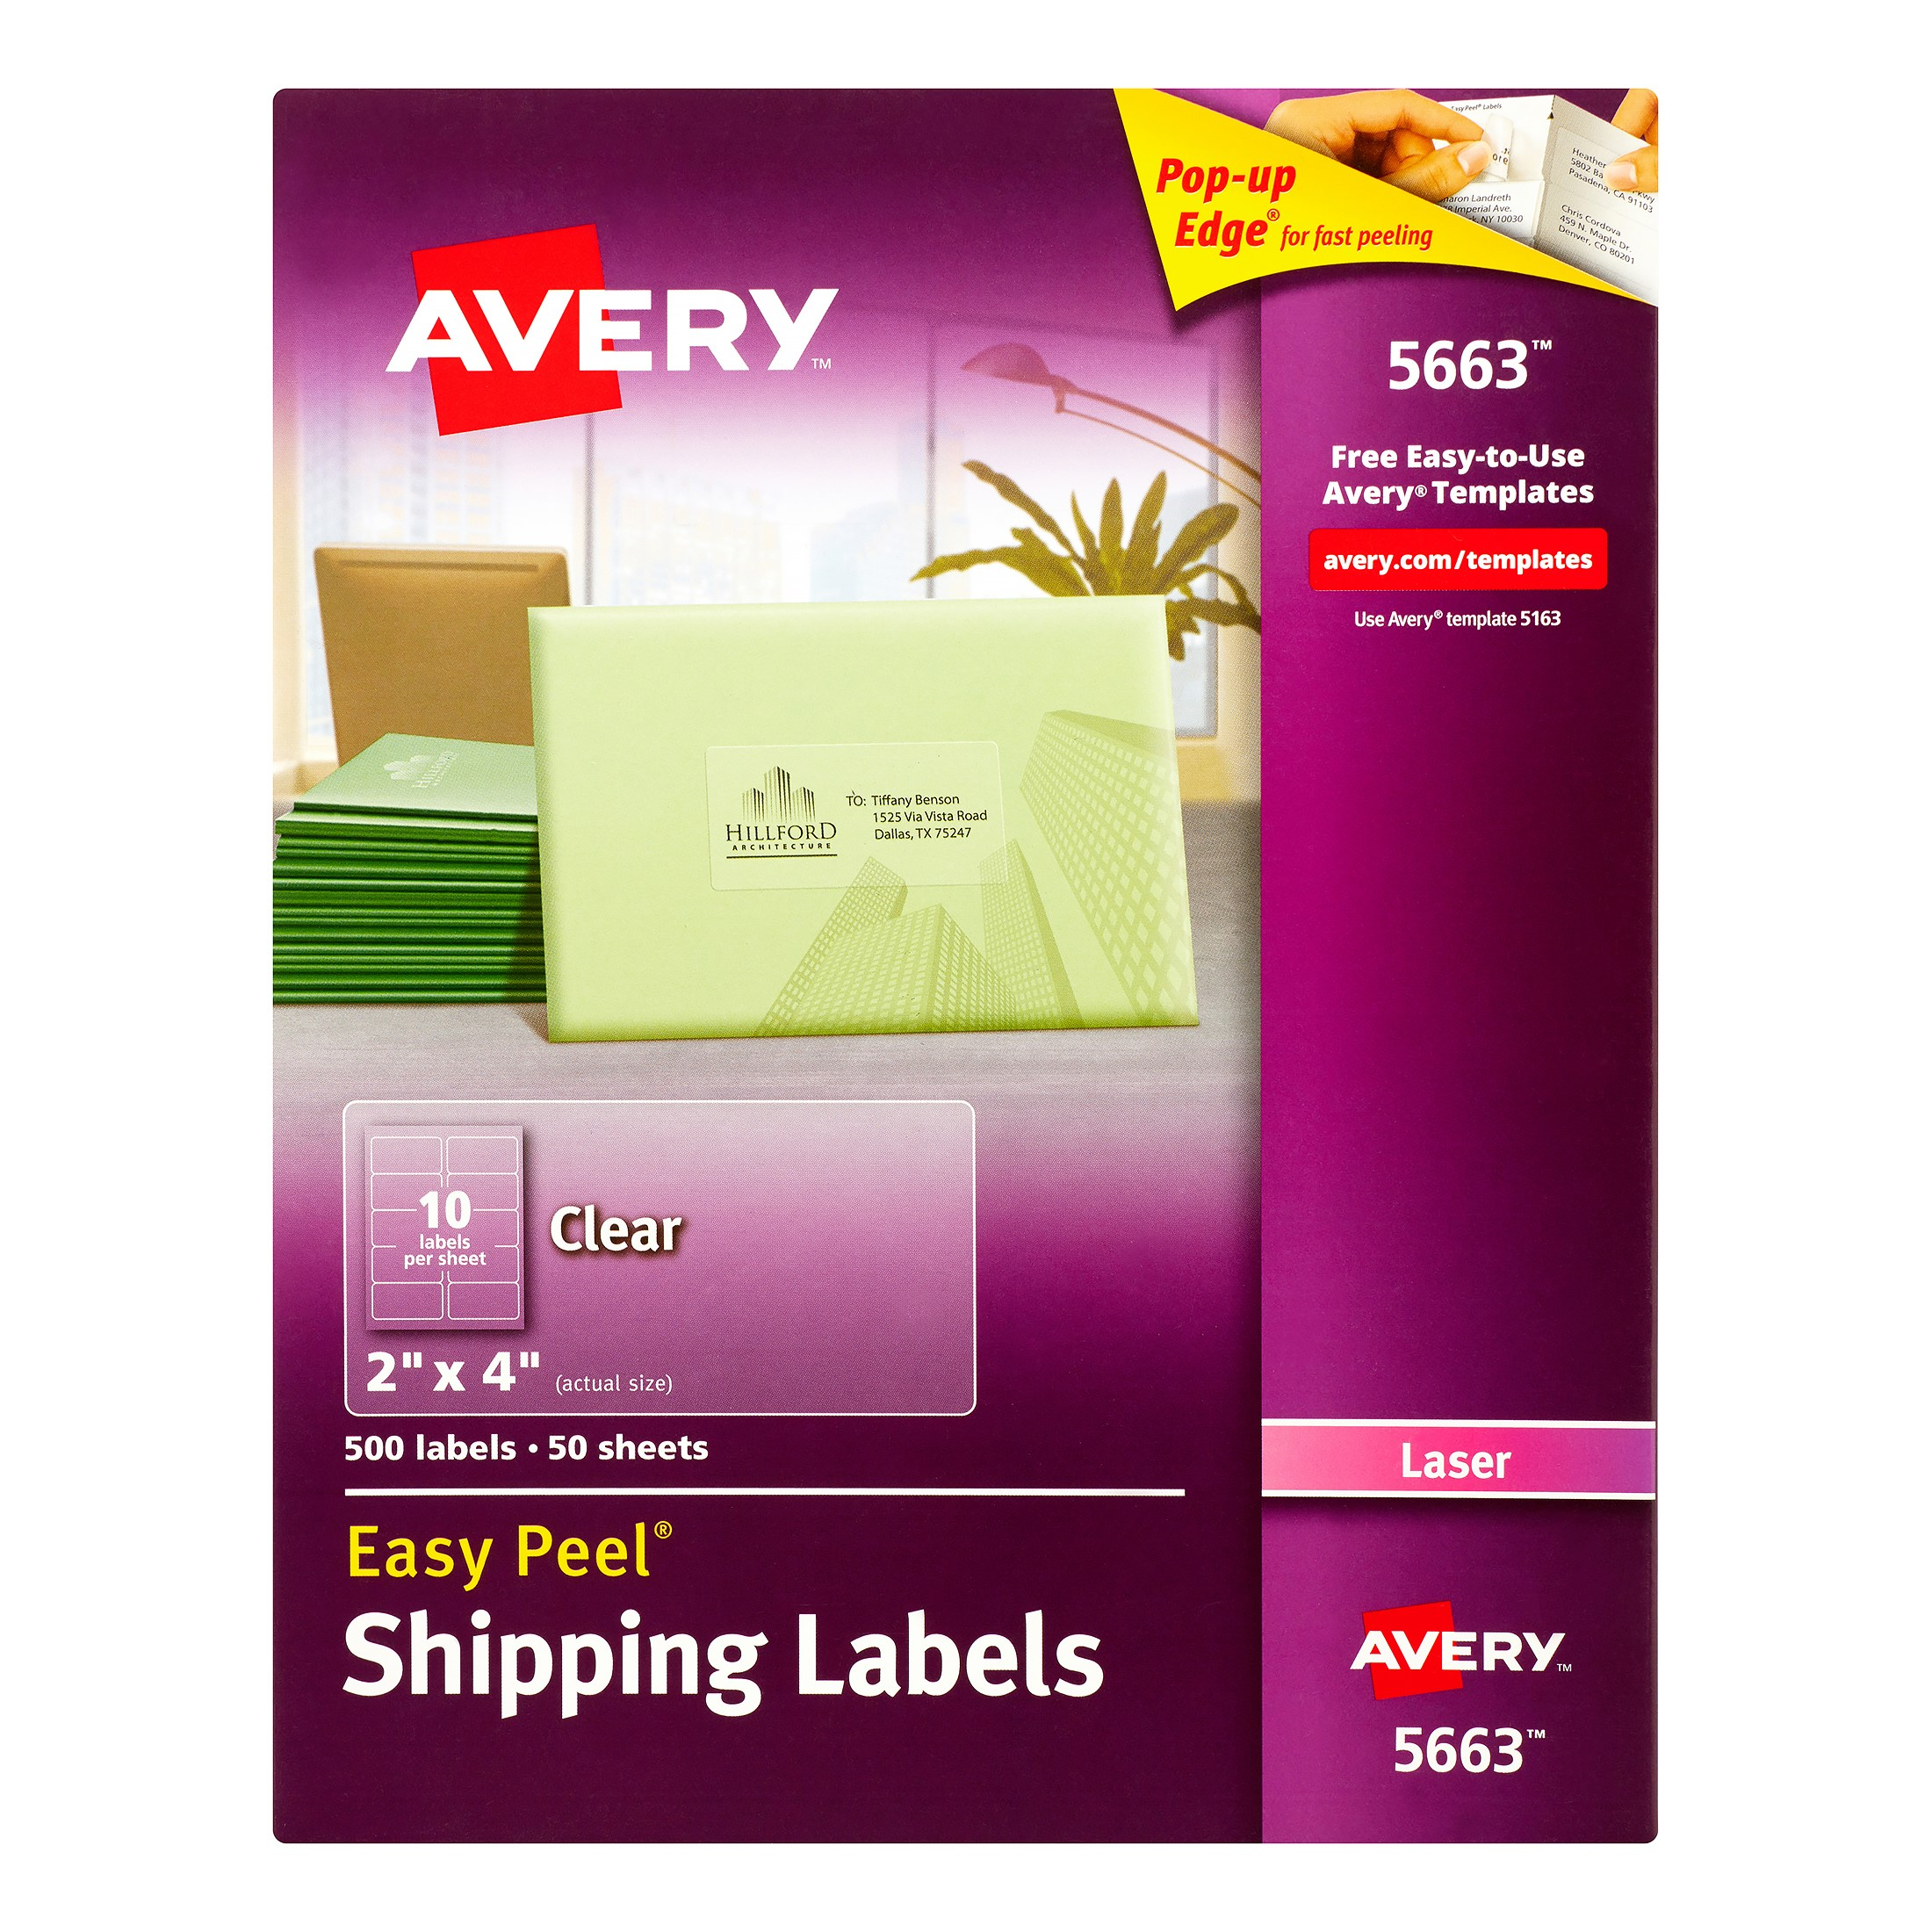 Avery Easy-Peel Shipping Labels for Laser Printers, 2 x 4 in., Clear, 500 Count (5663)